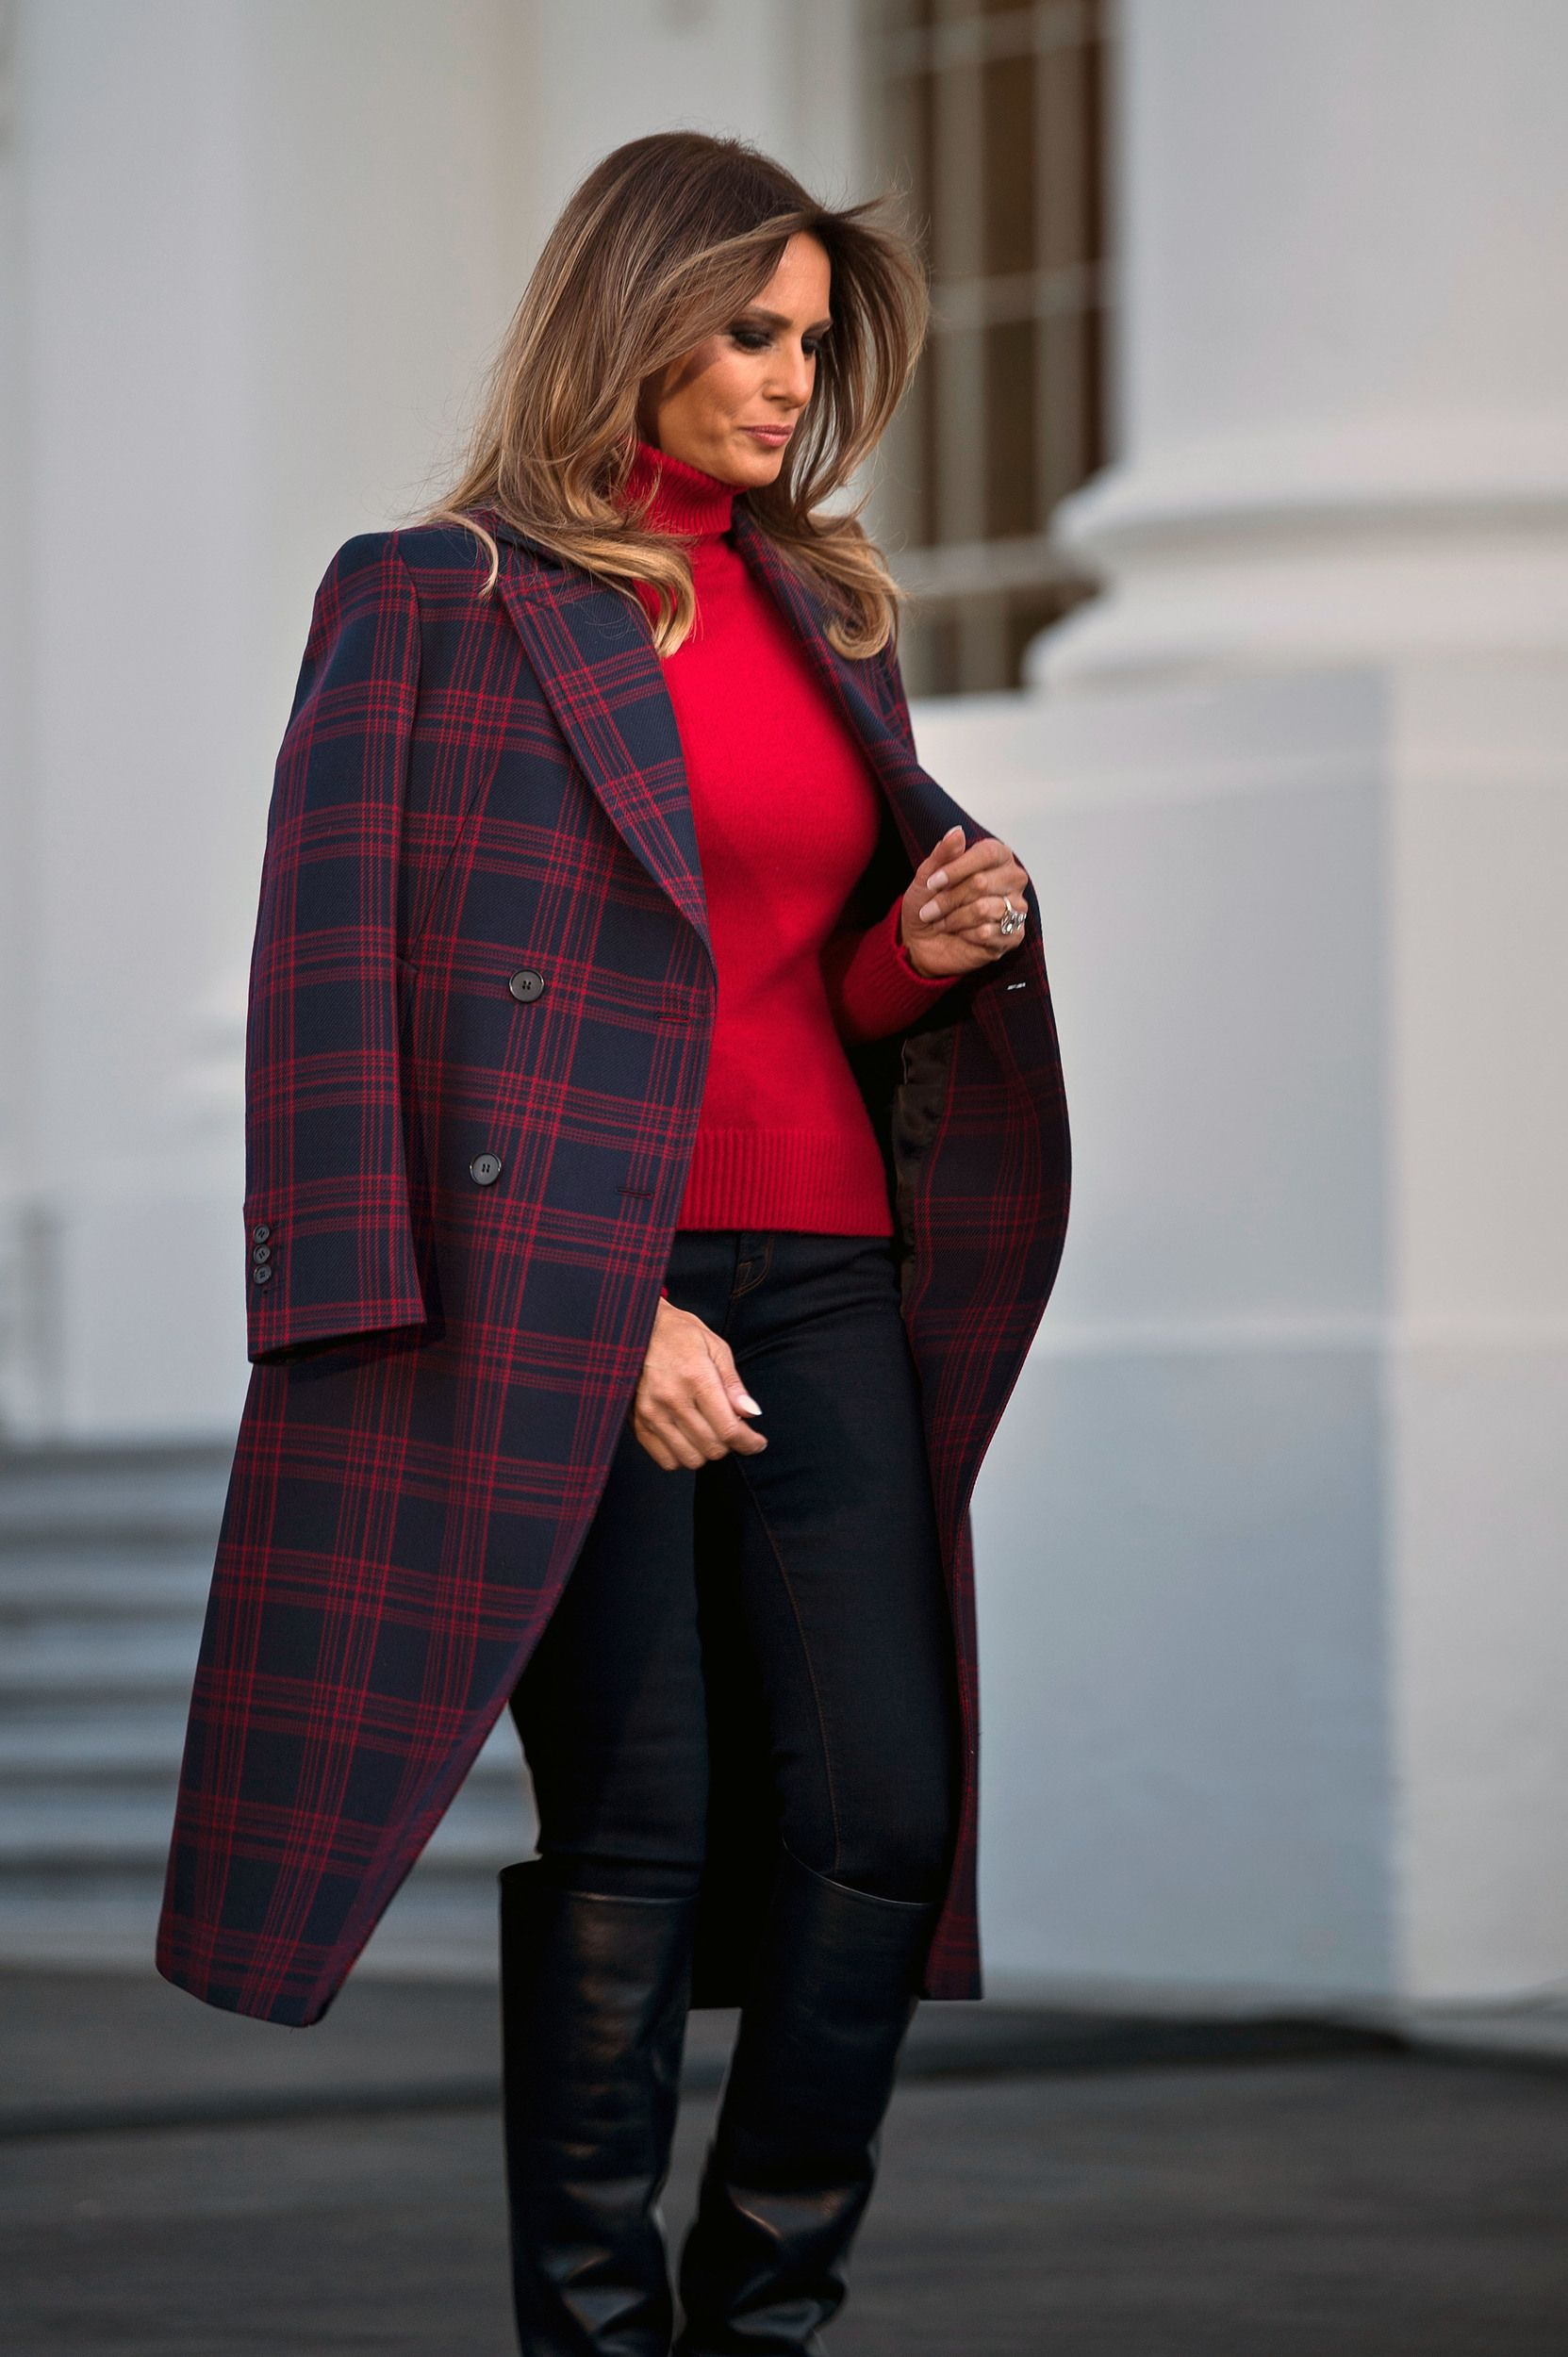 e65fd1453f4f US first lady Melania Trump arrives to receive a Christmas tree during an  event at the